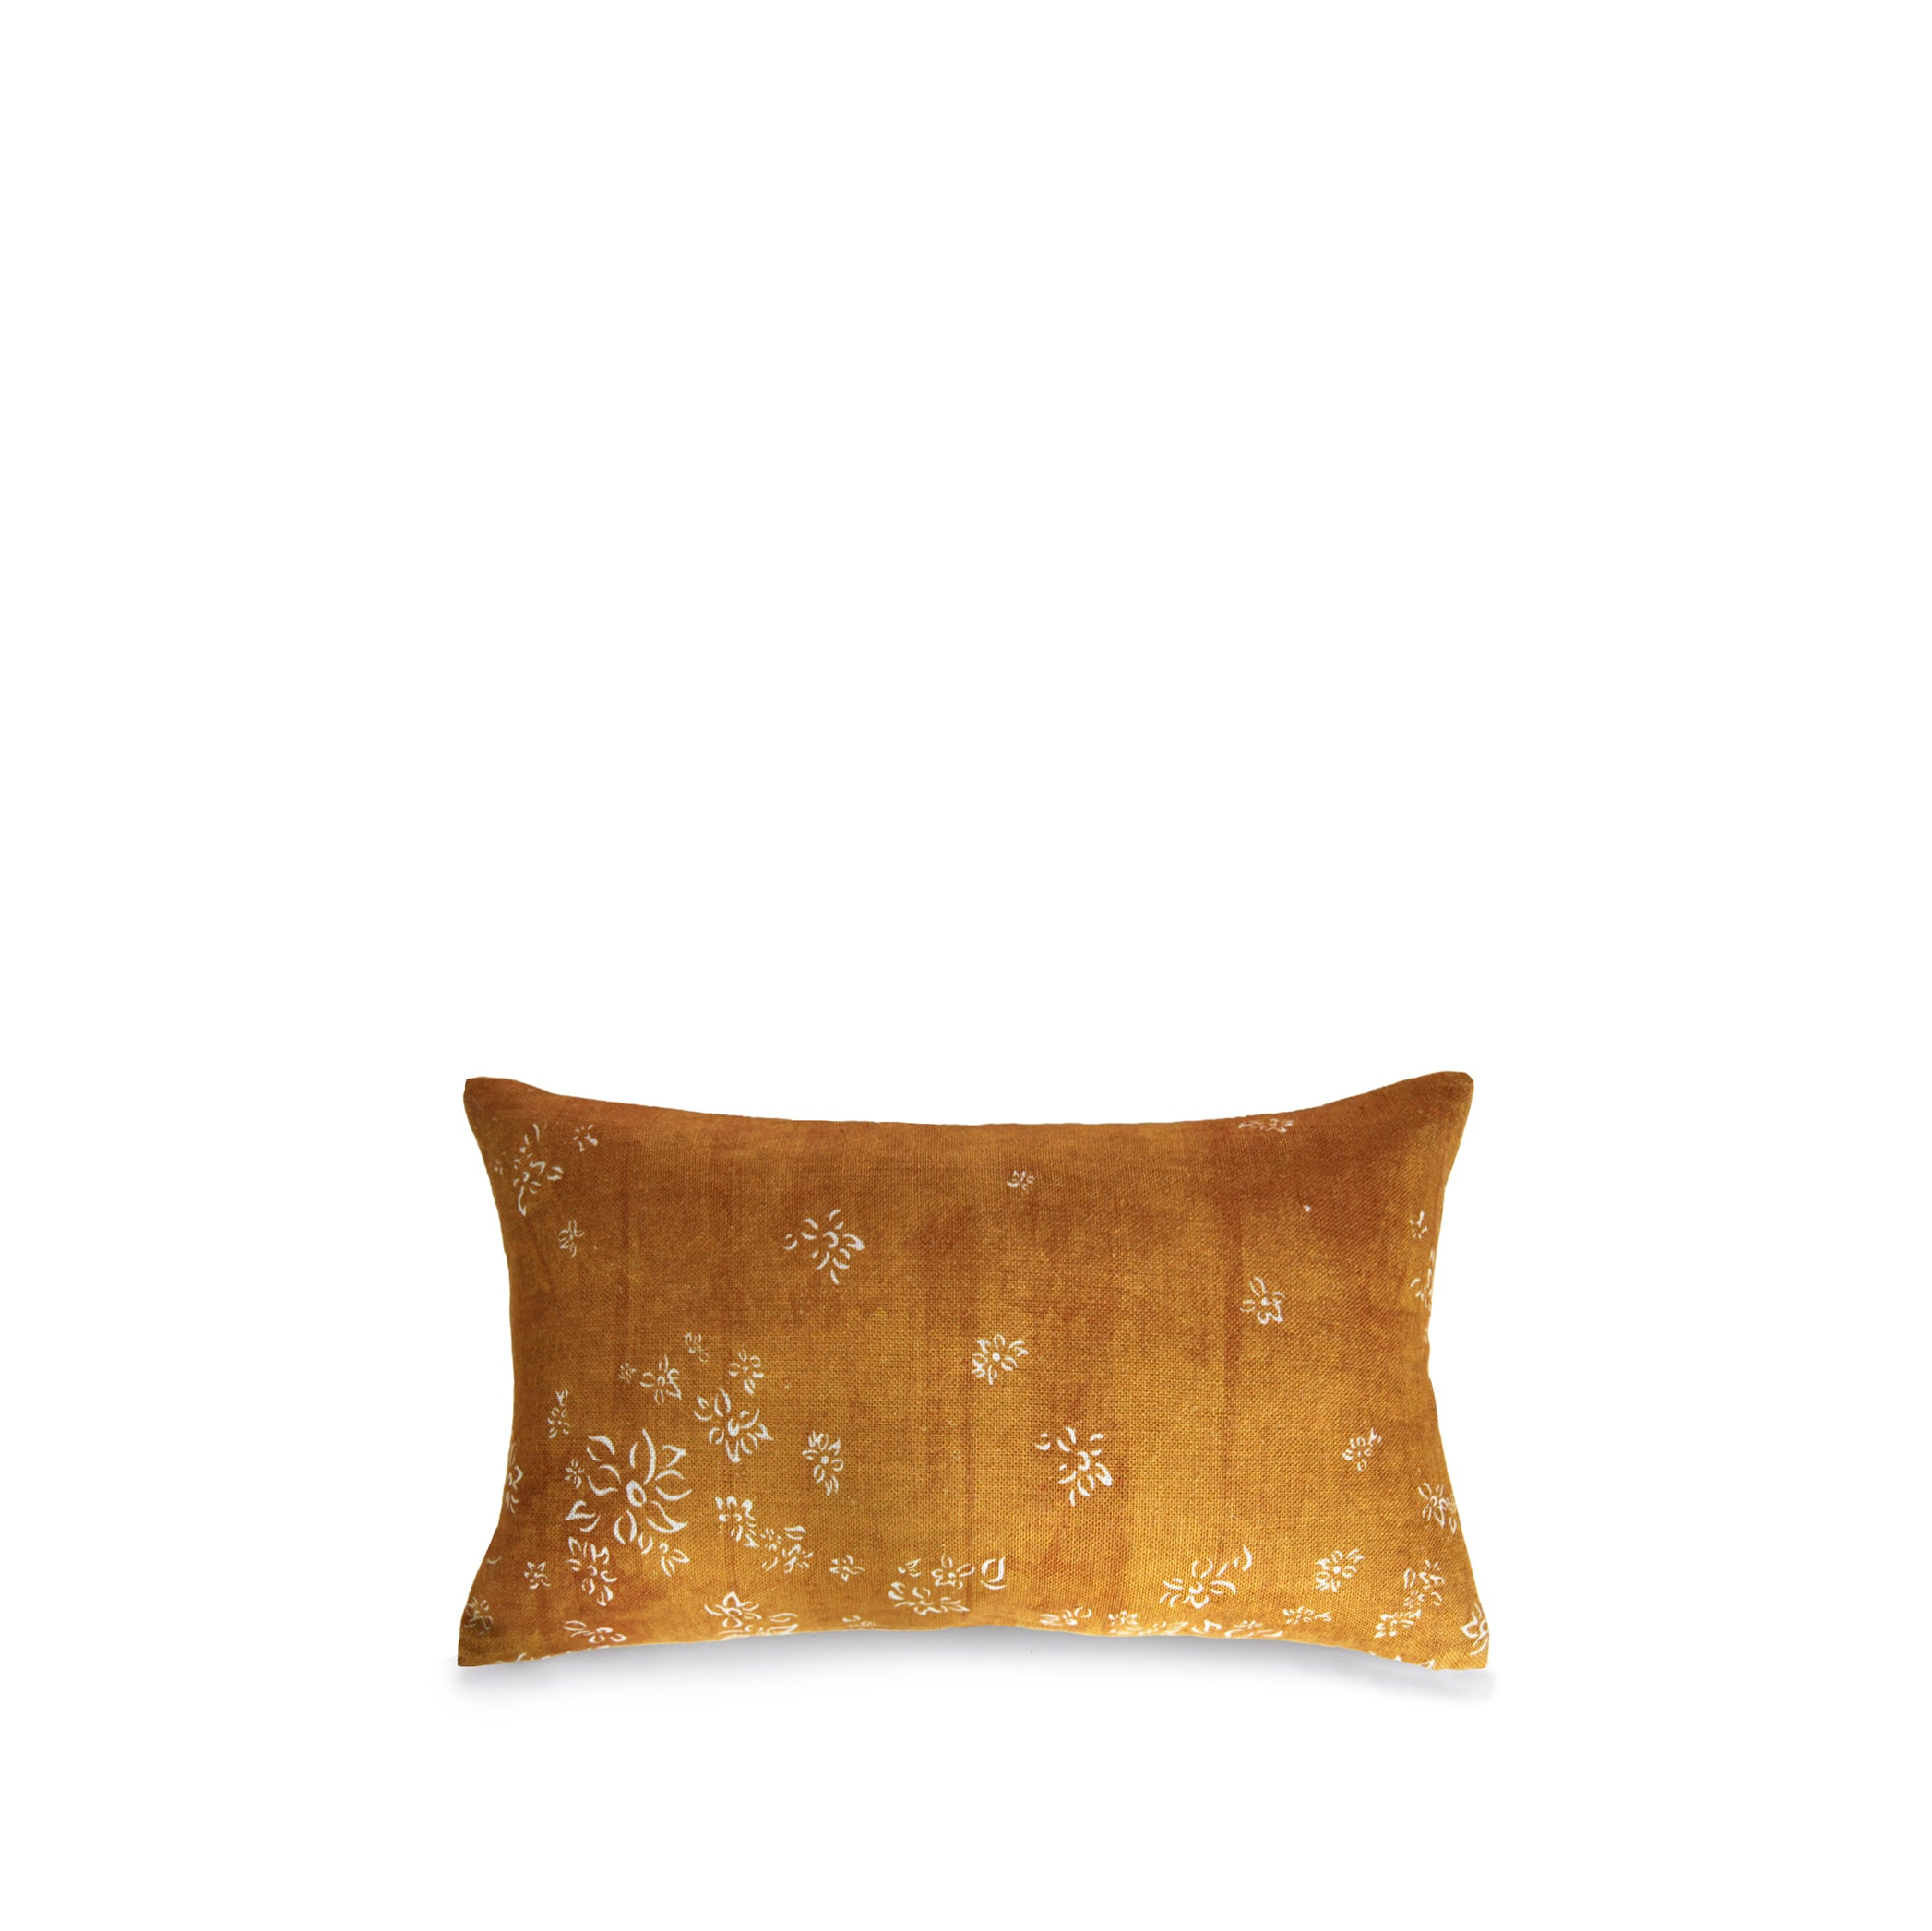 Heavy Linen Falling Flower Cushion in Full Field Mustard Yellow, 50cm x 30cm